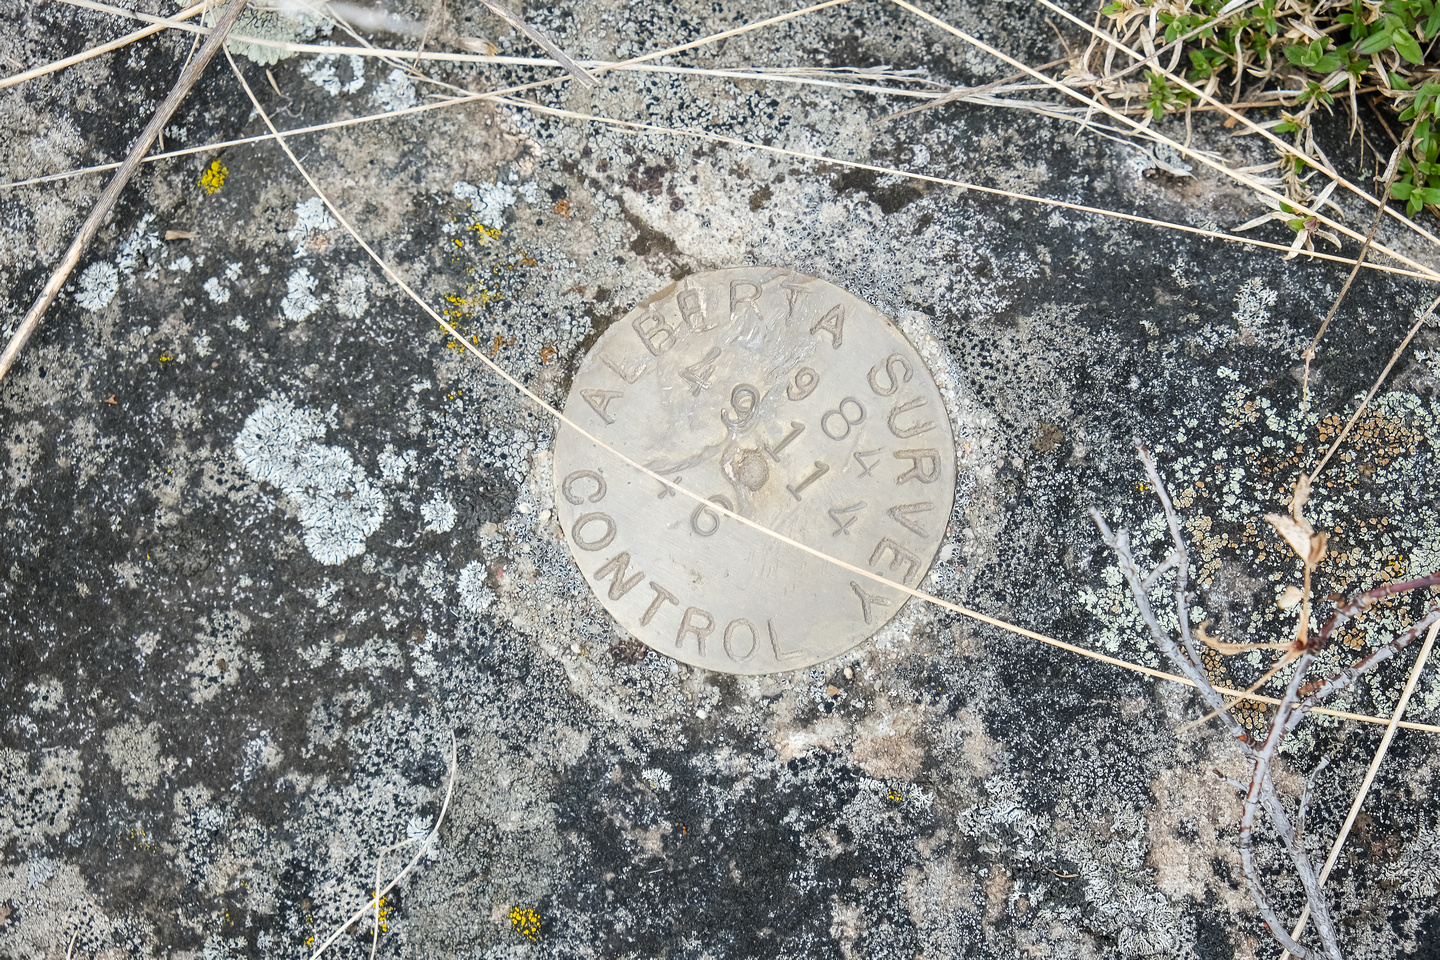 Another survey marker - I ran into a lot of these lately.